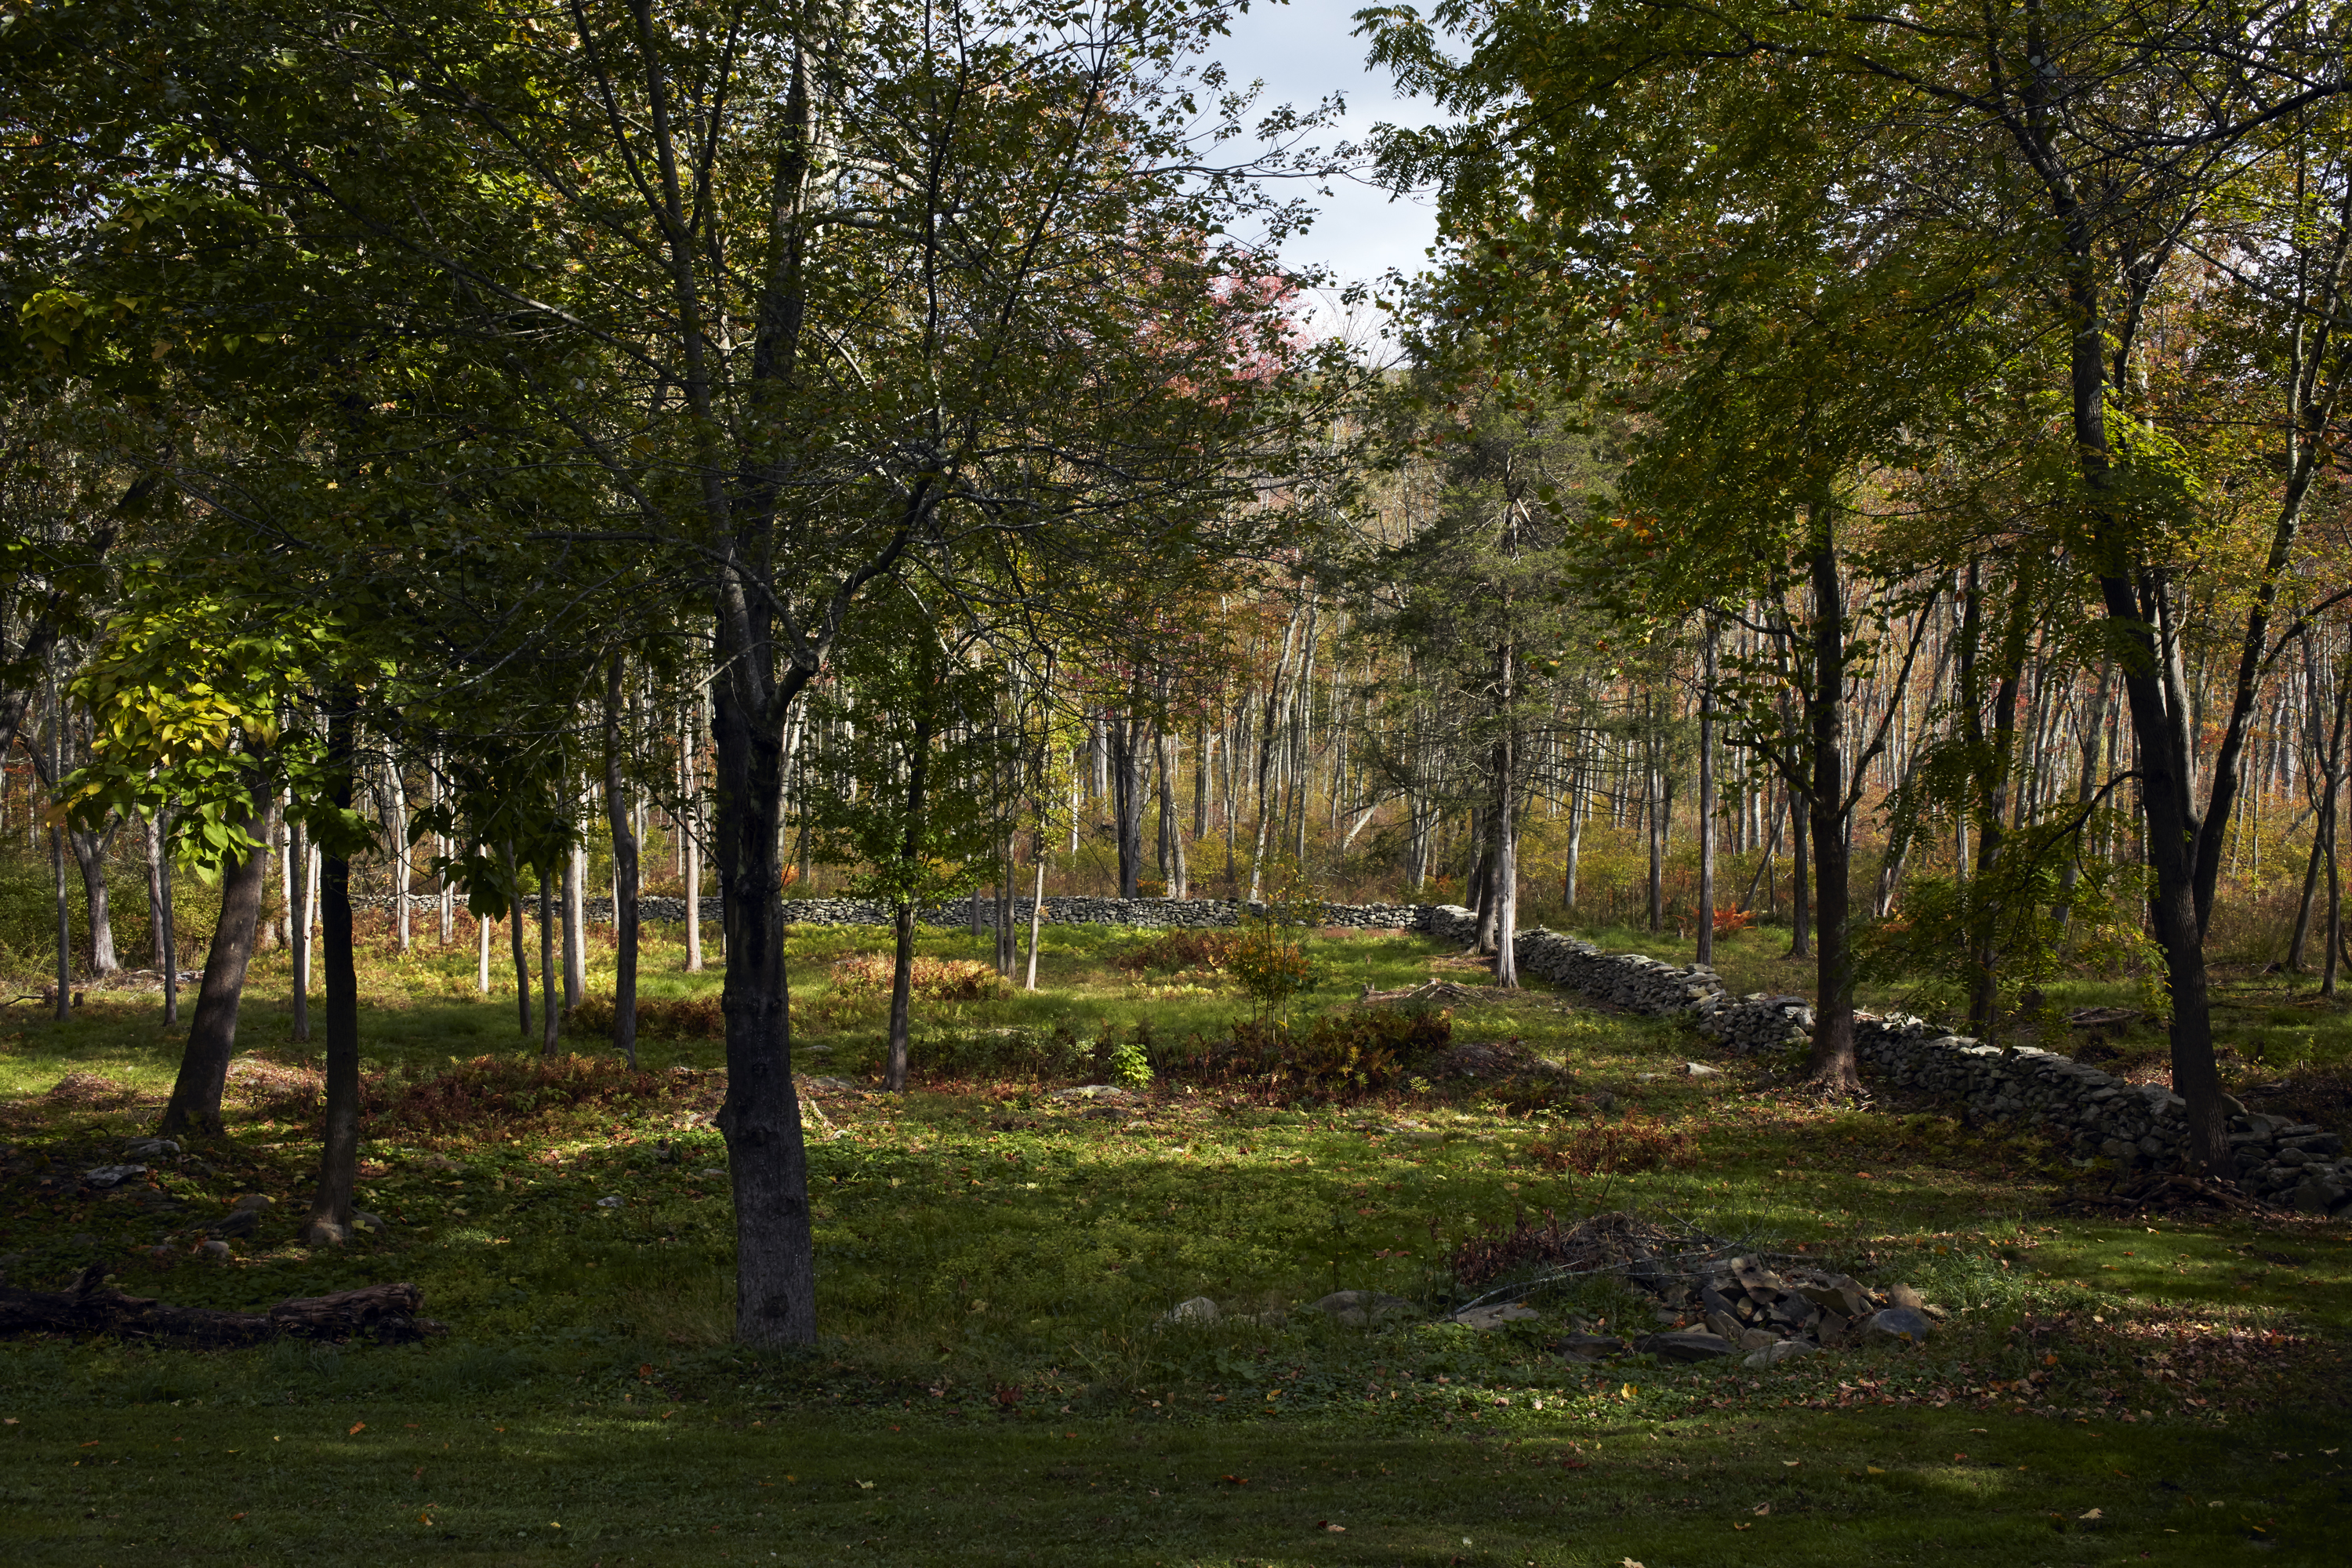 The backyard of the home has several large trees and long stretches of stone walls.